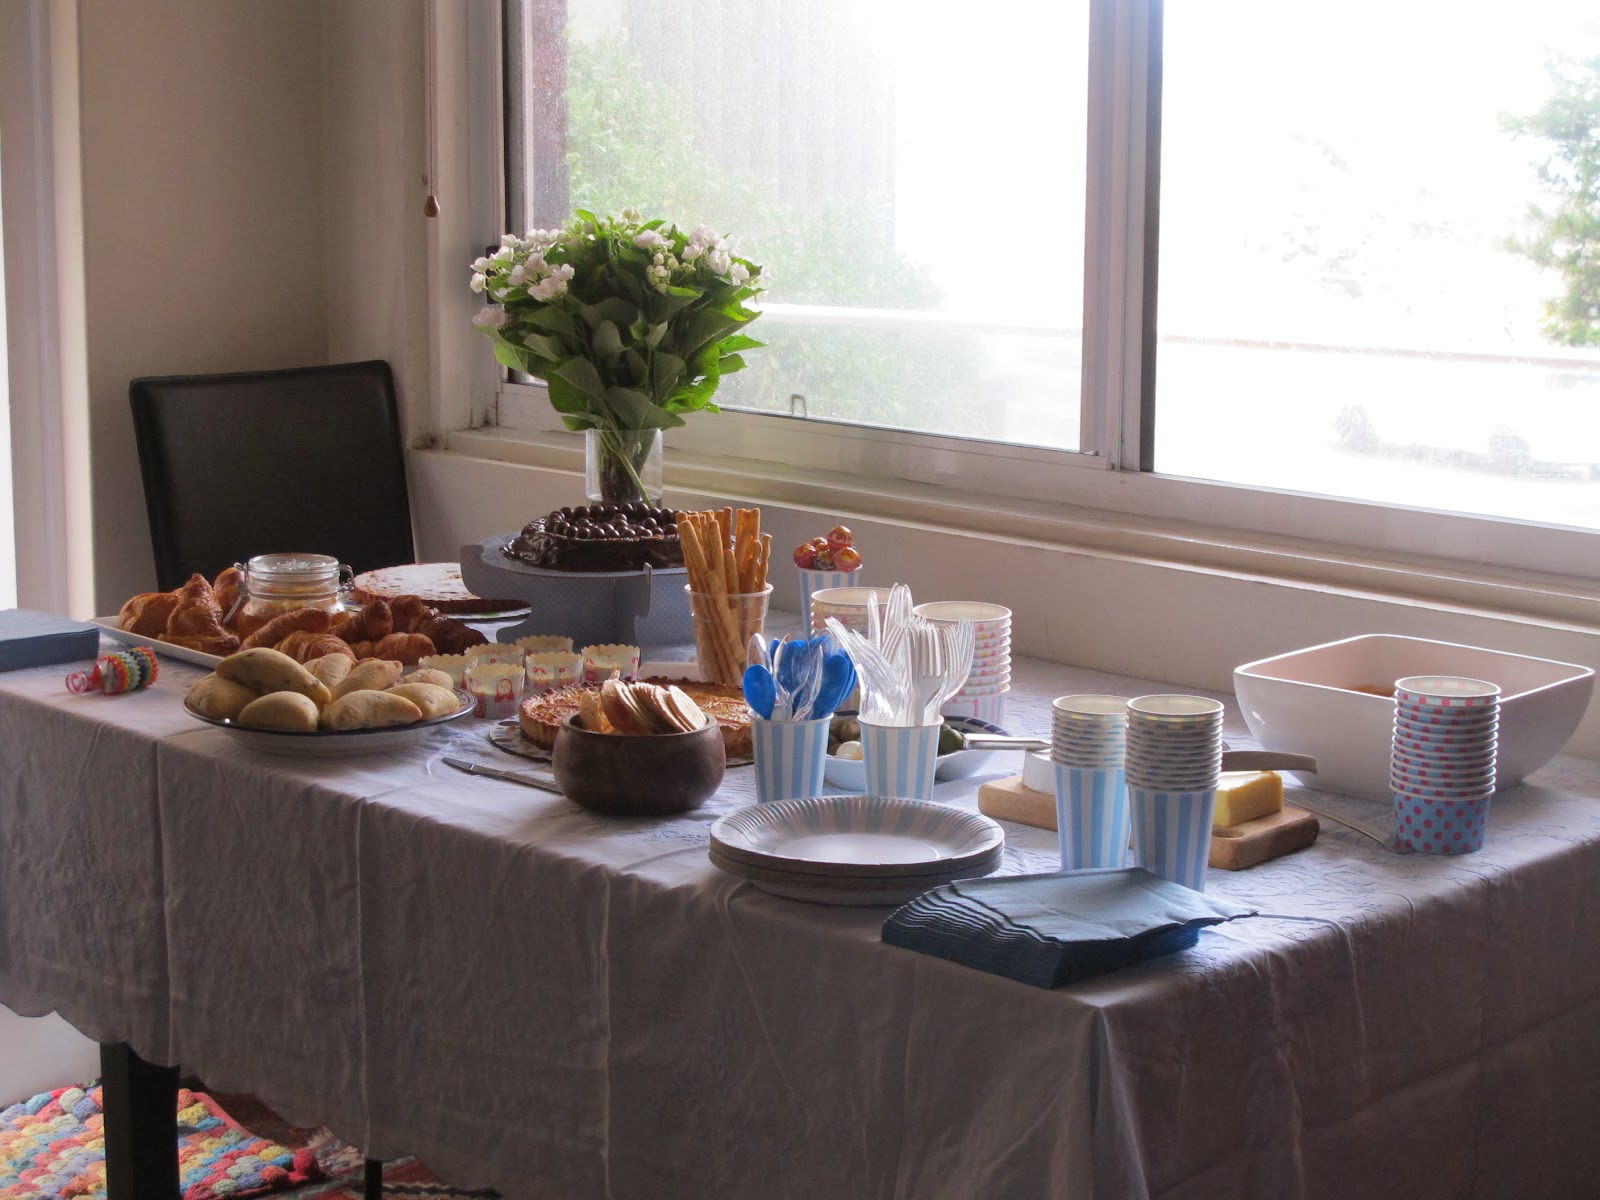 Table with food for the baptism celebration